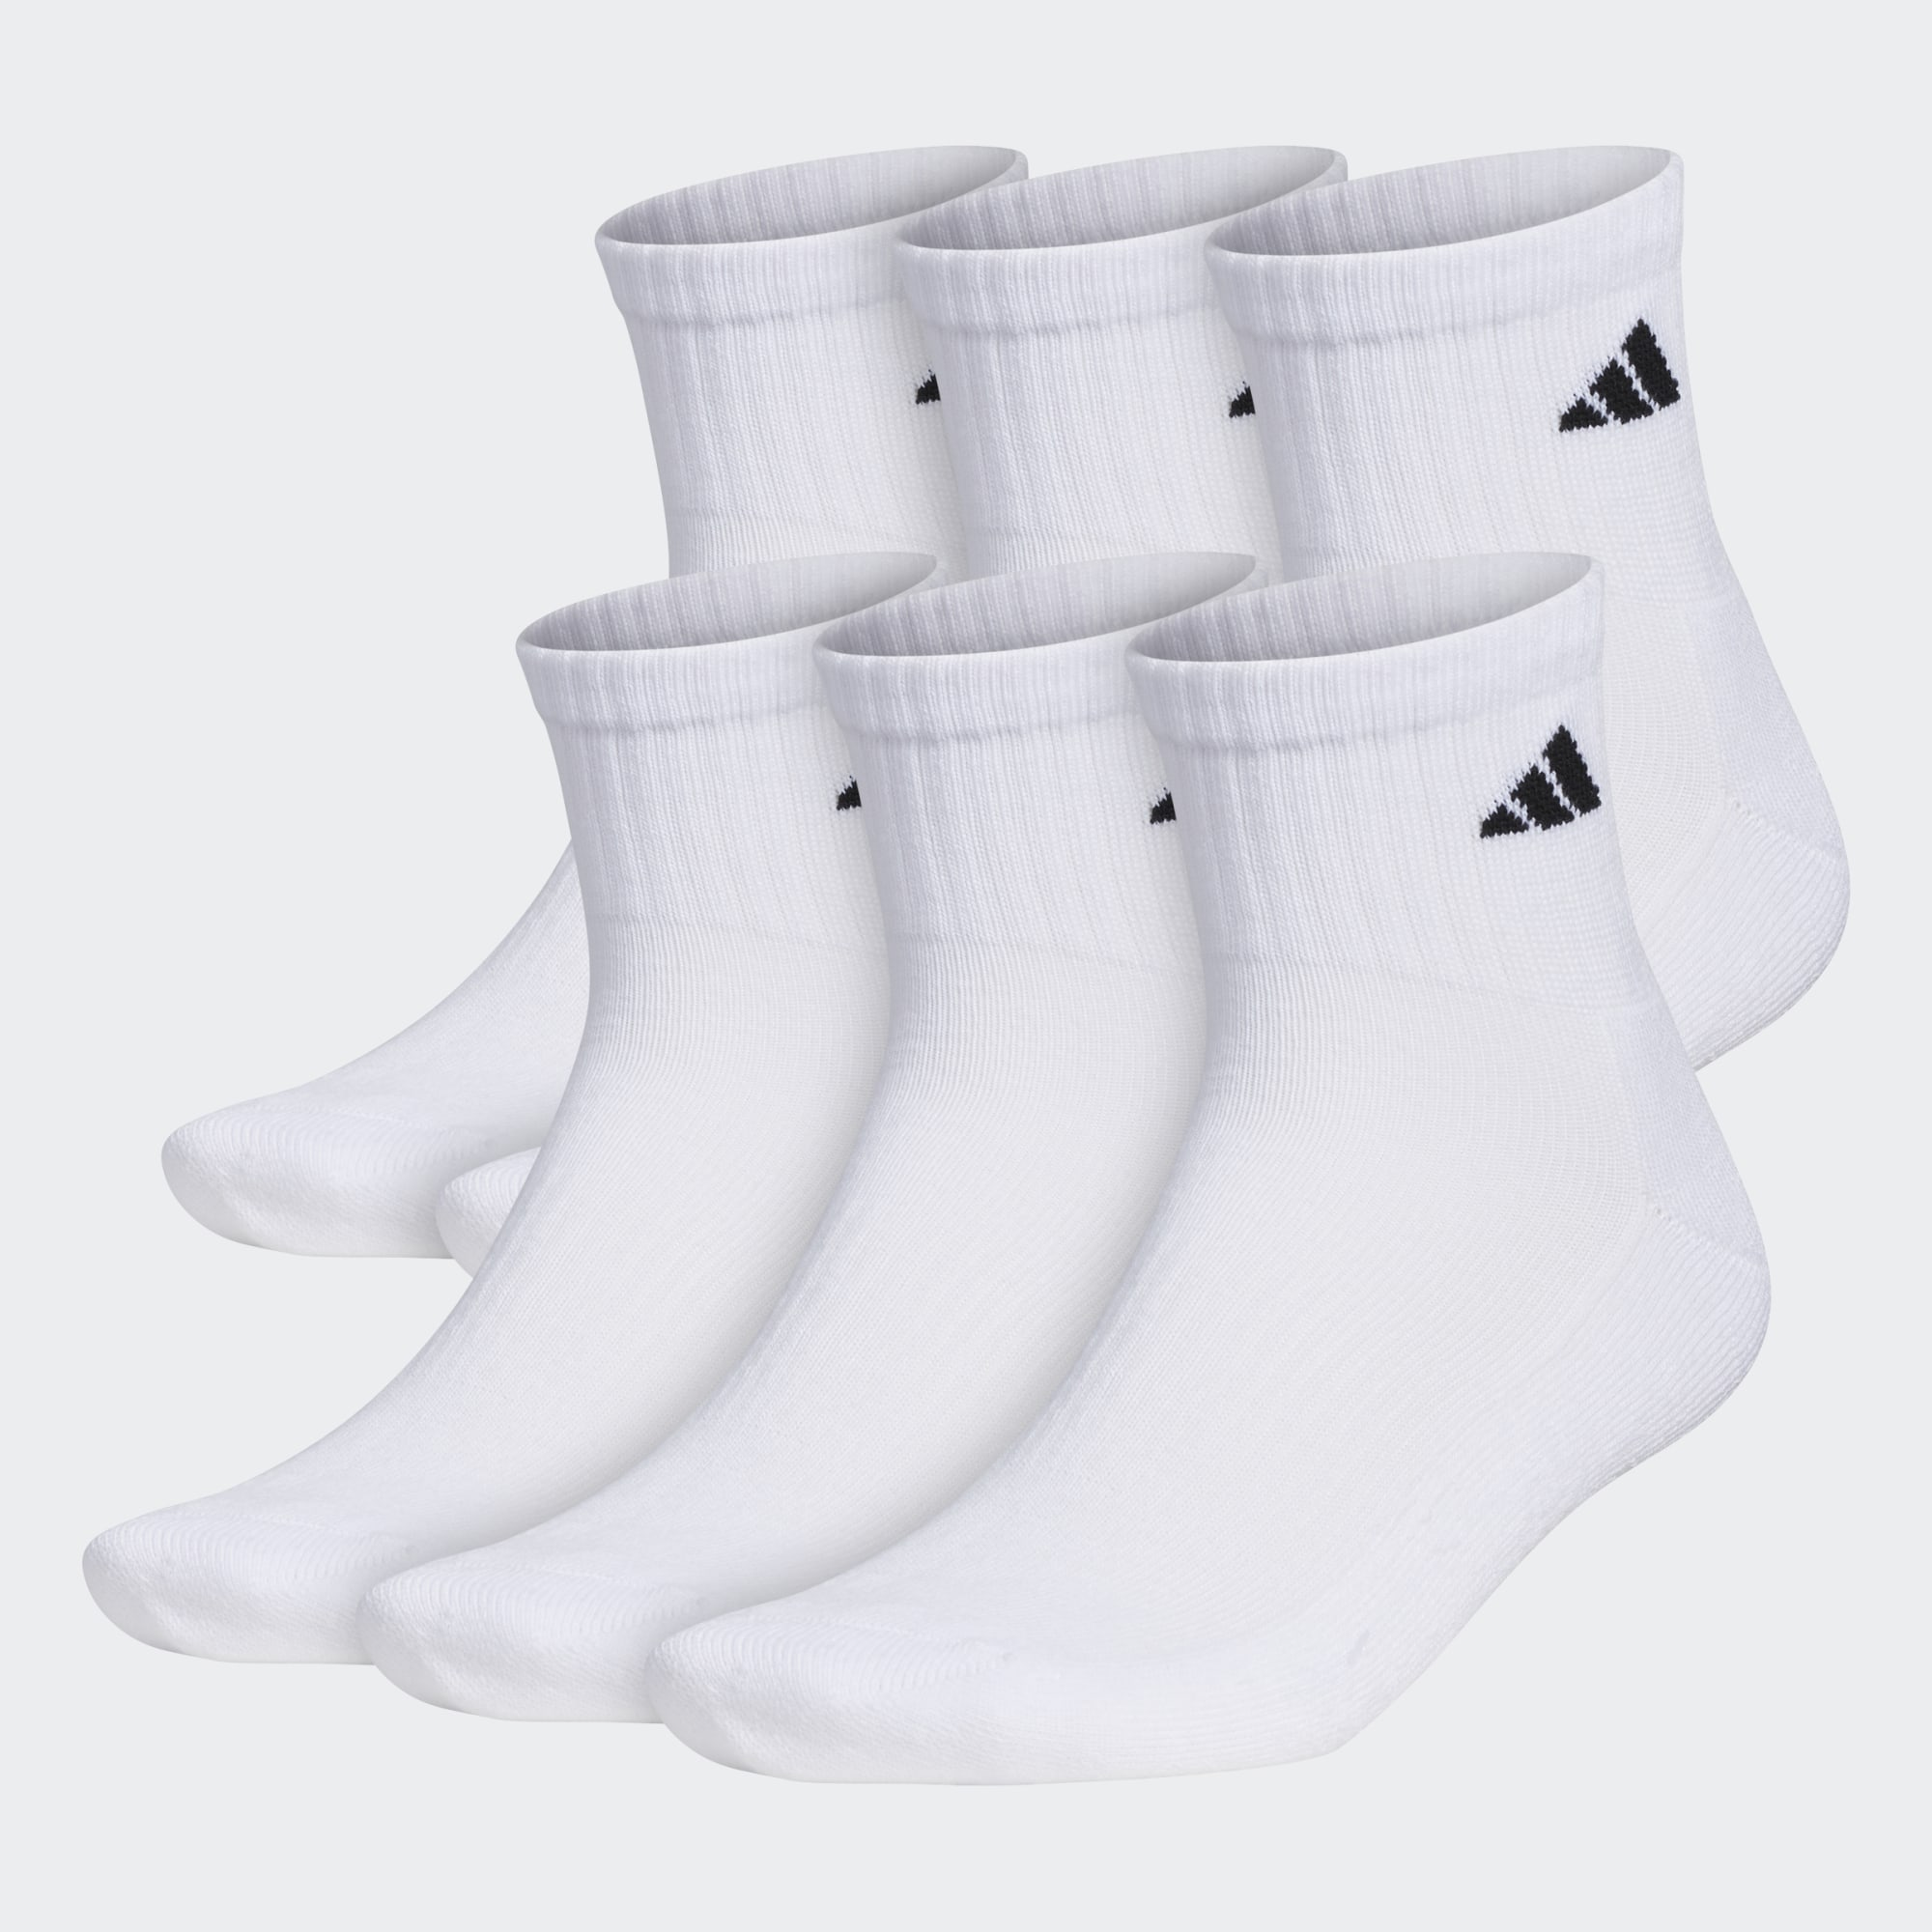 6-Pack Adidas Mens Quarter Socks